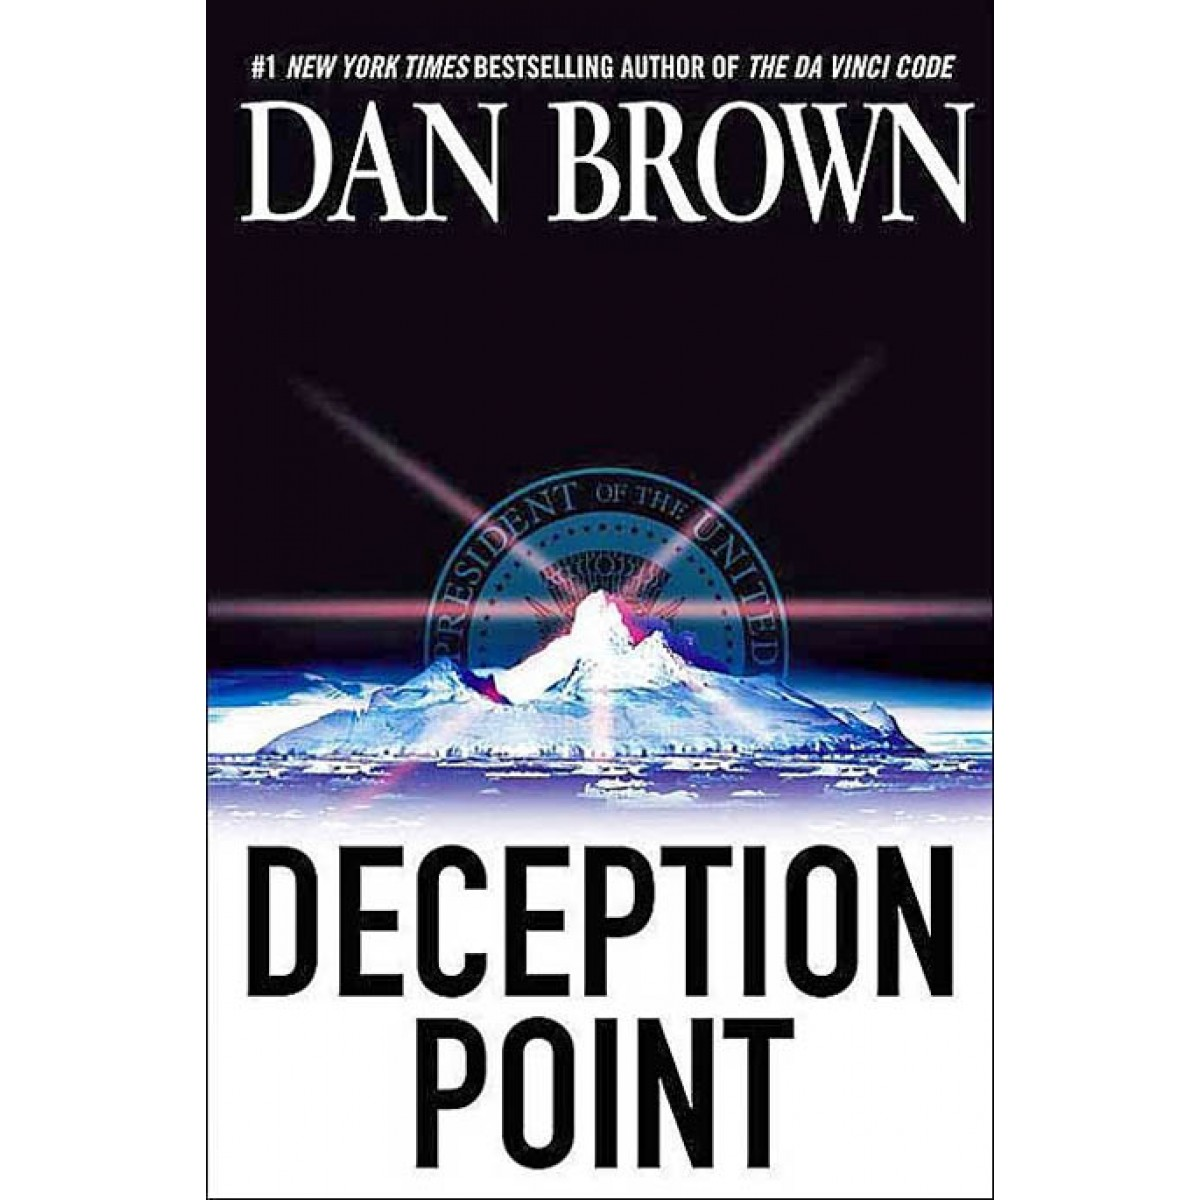 deception point by dan brown essay Deception point is a mystery and suspense thriller that combines in-depth knowledge of classified intelligence with high-tech weaponry and presidential politics in a very fast-paced, suspenseful novel.